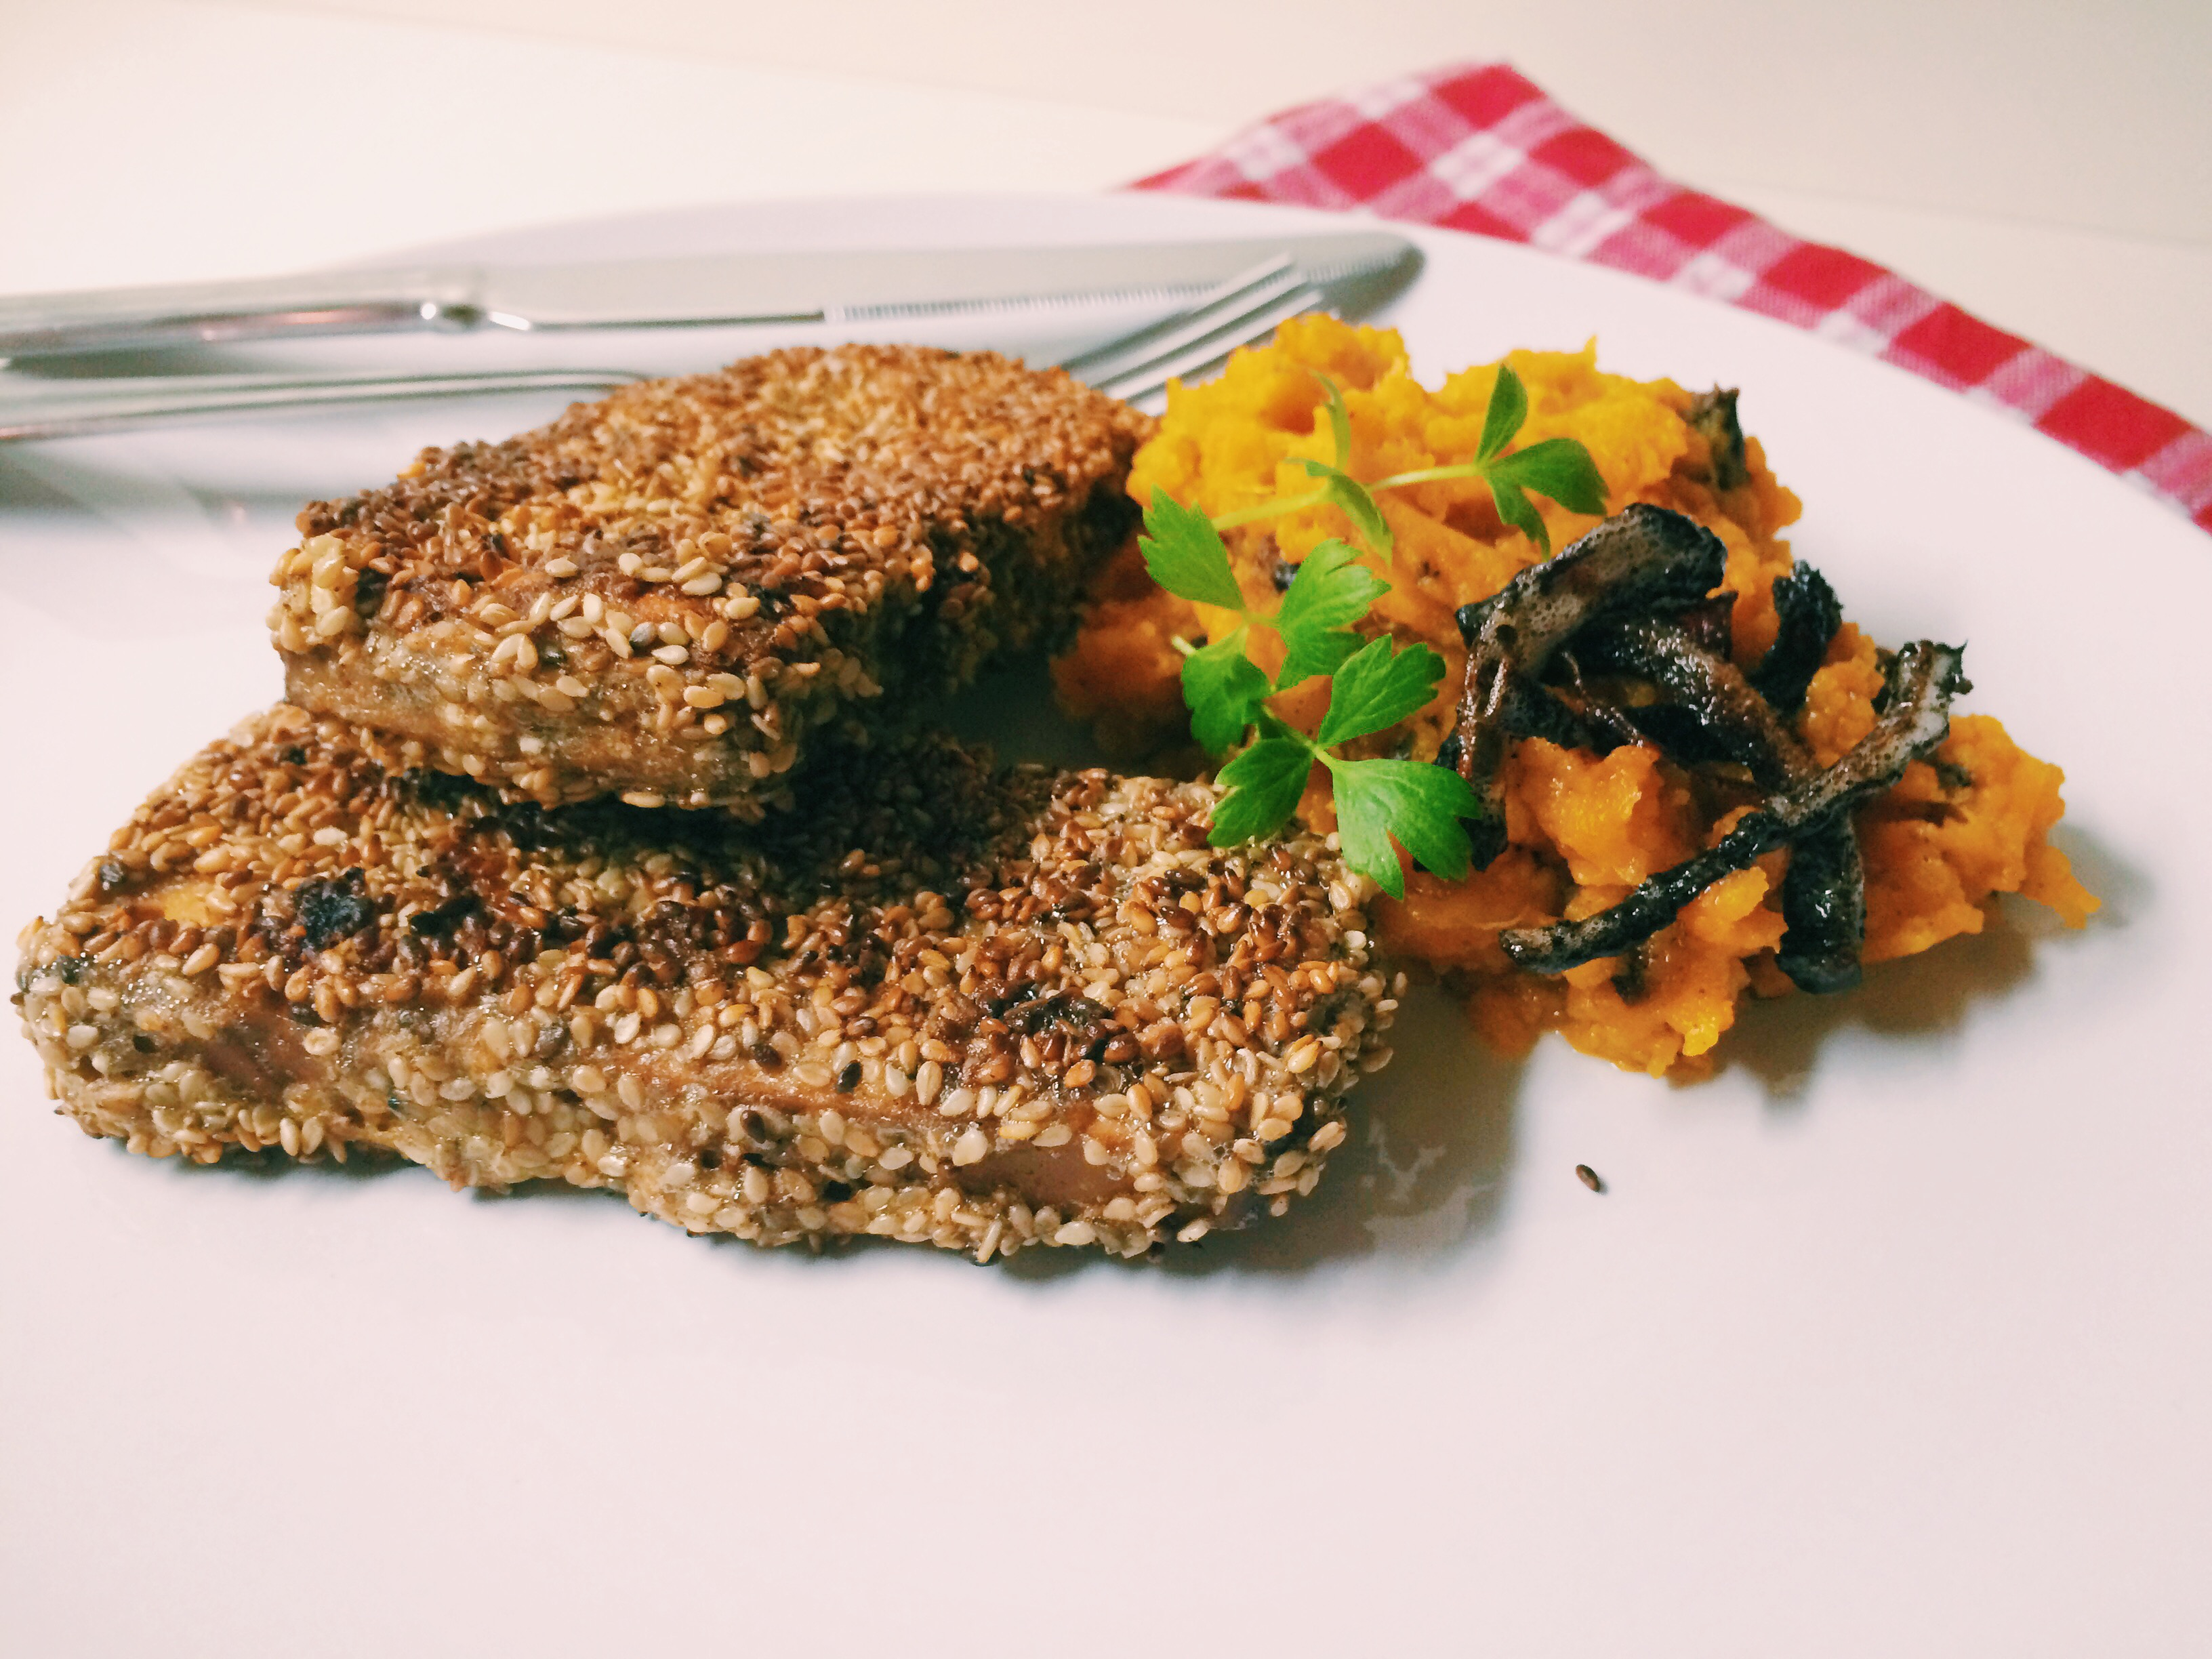 Office Lunch – Tofu Sesam Schnitzel